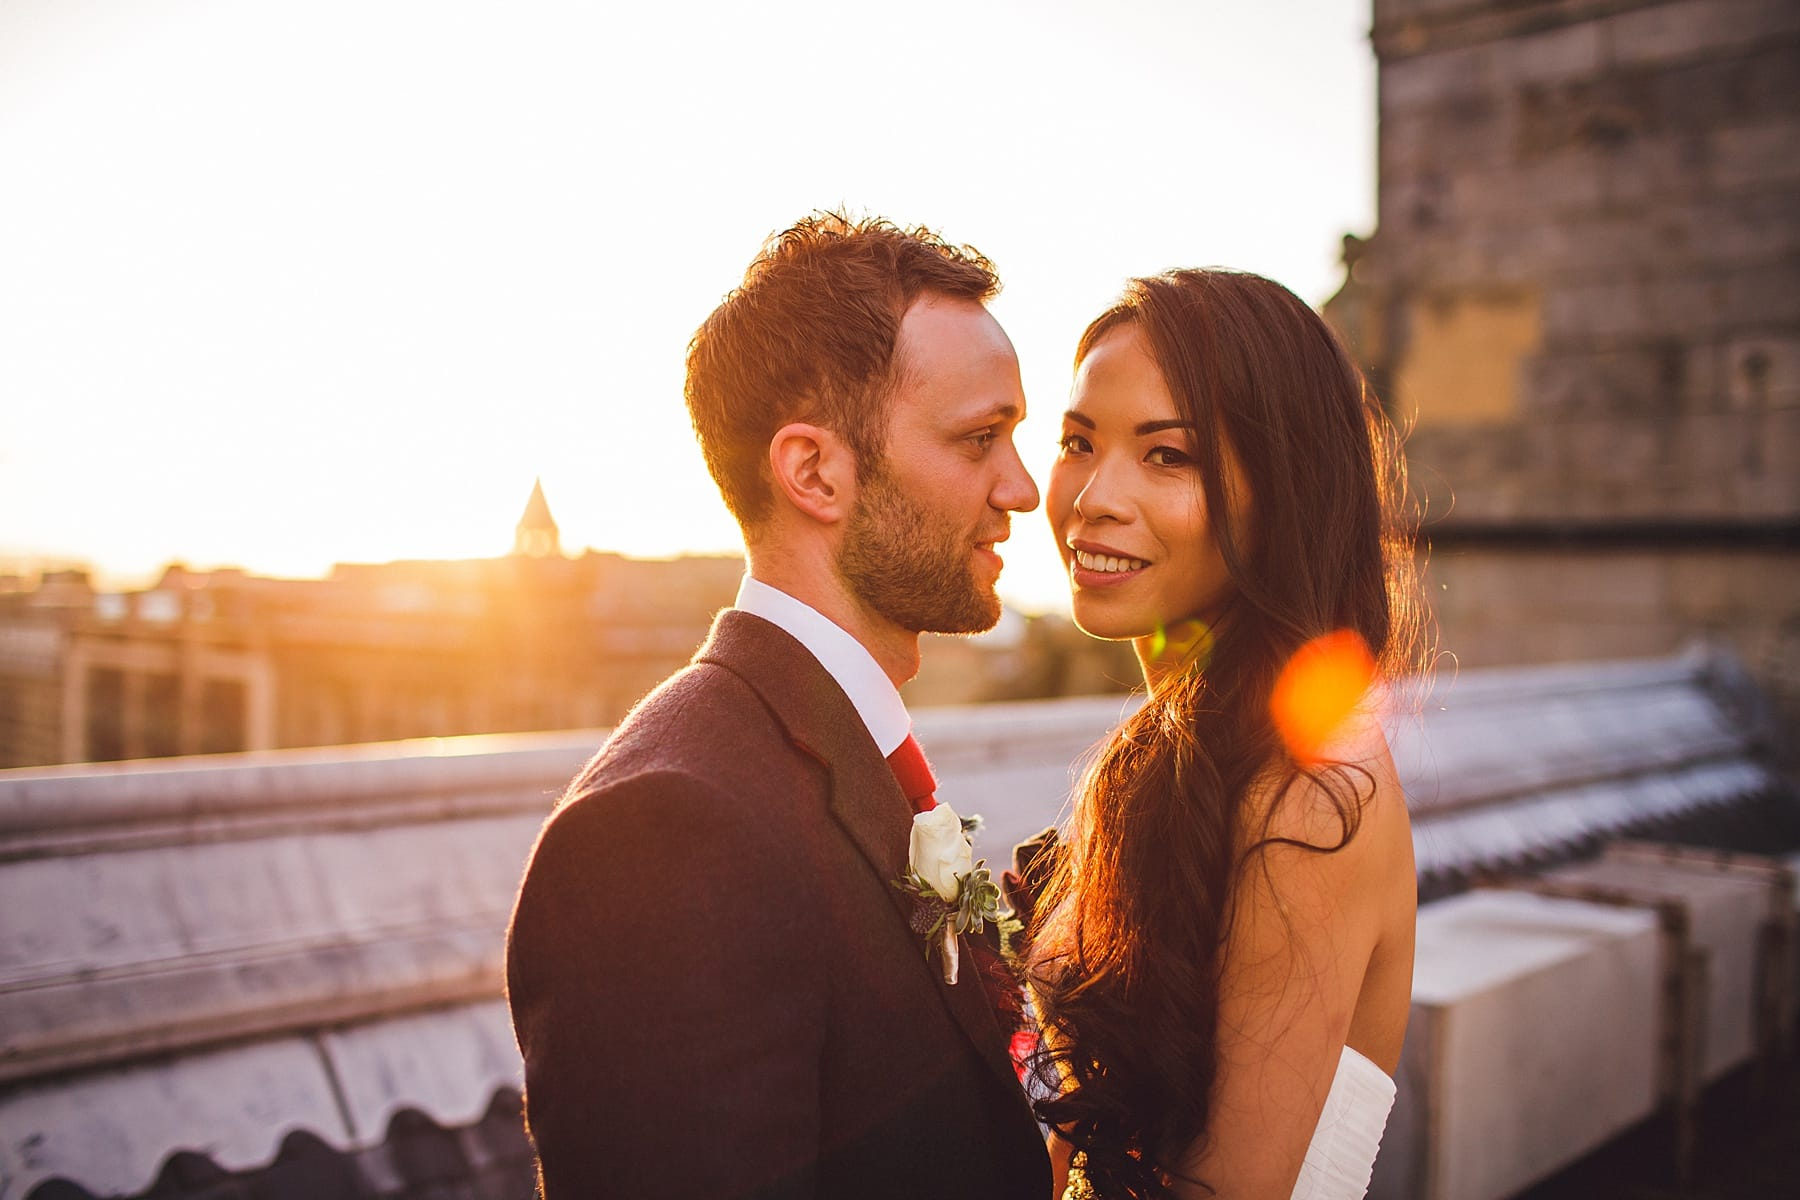 scotland wedding photographer,balmoral hotel edinburgh,crieff hotel,glenview hotel,trinity college dublin wedding,tinakilly house,port eliot,borris house,ivory pavilion,kilruddery house and gardens,